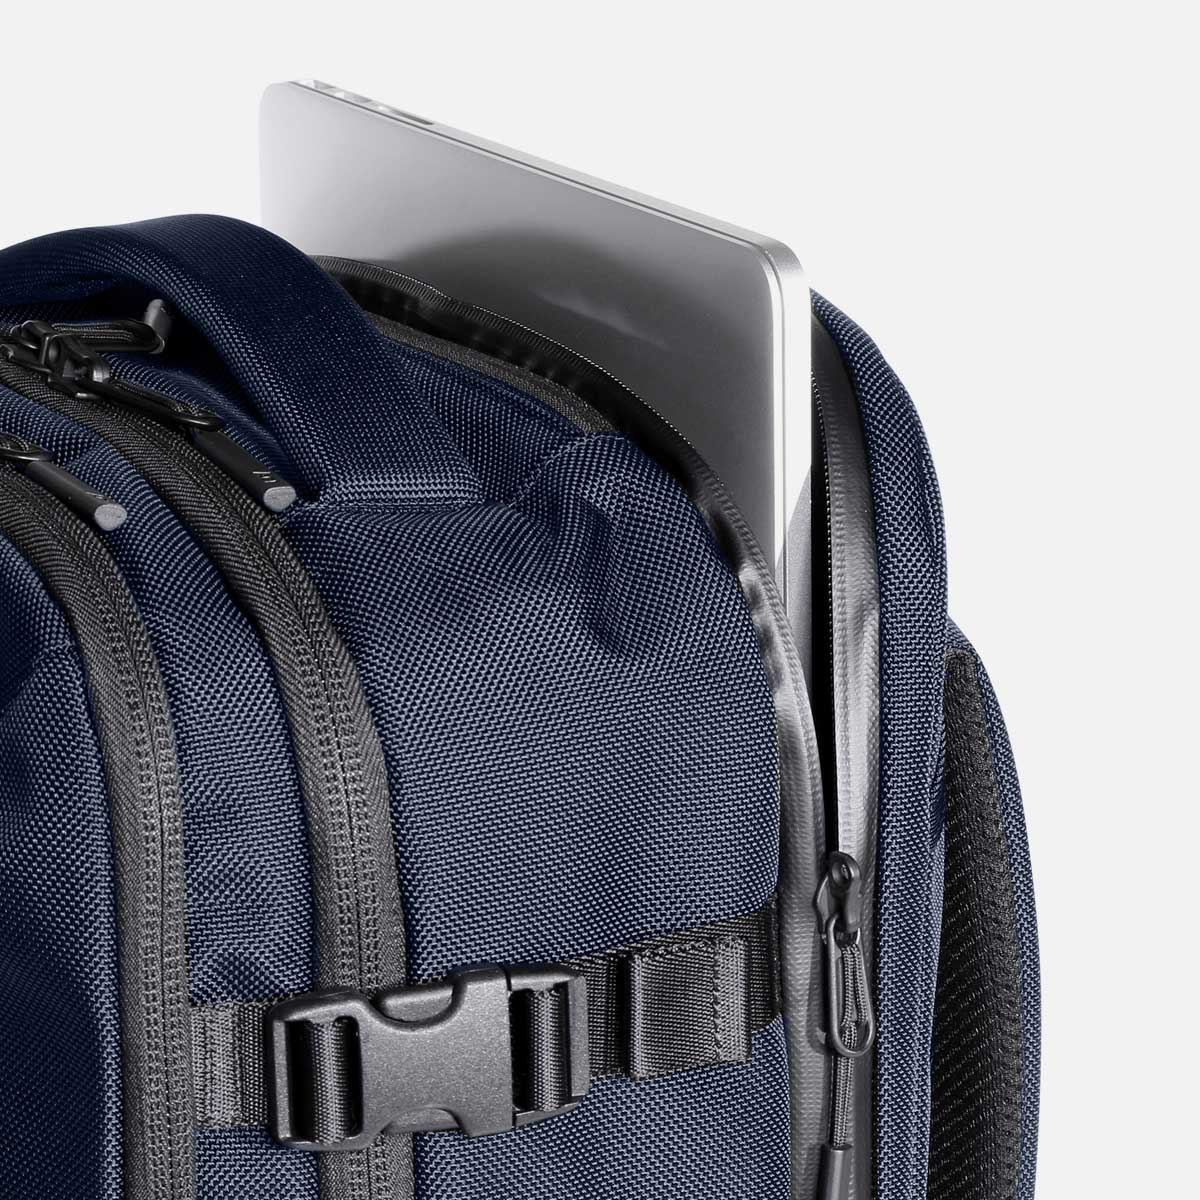 Quick access laptop pocket with padded base and YKK® AquaGuard® zippers.